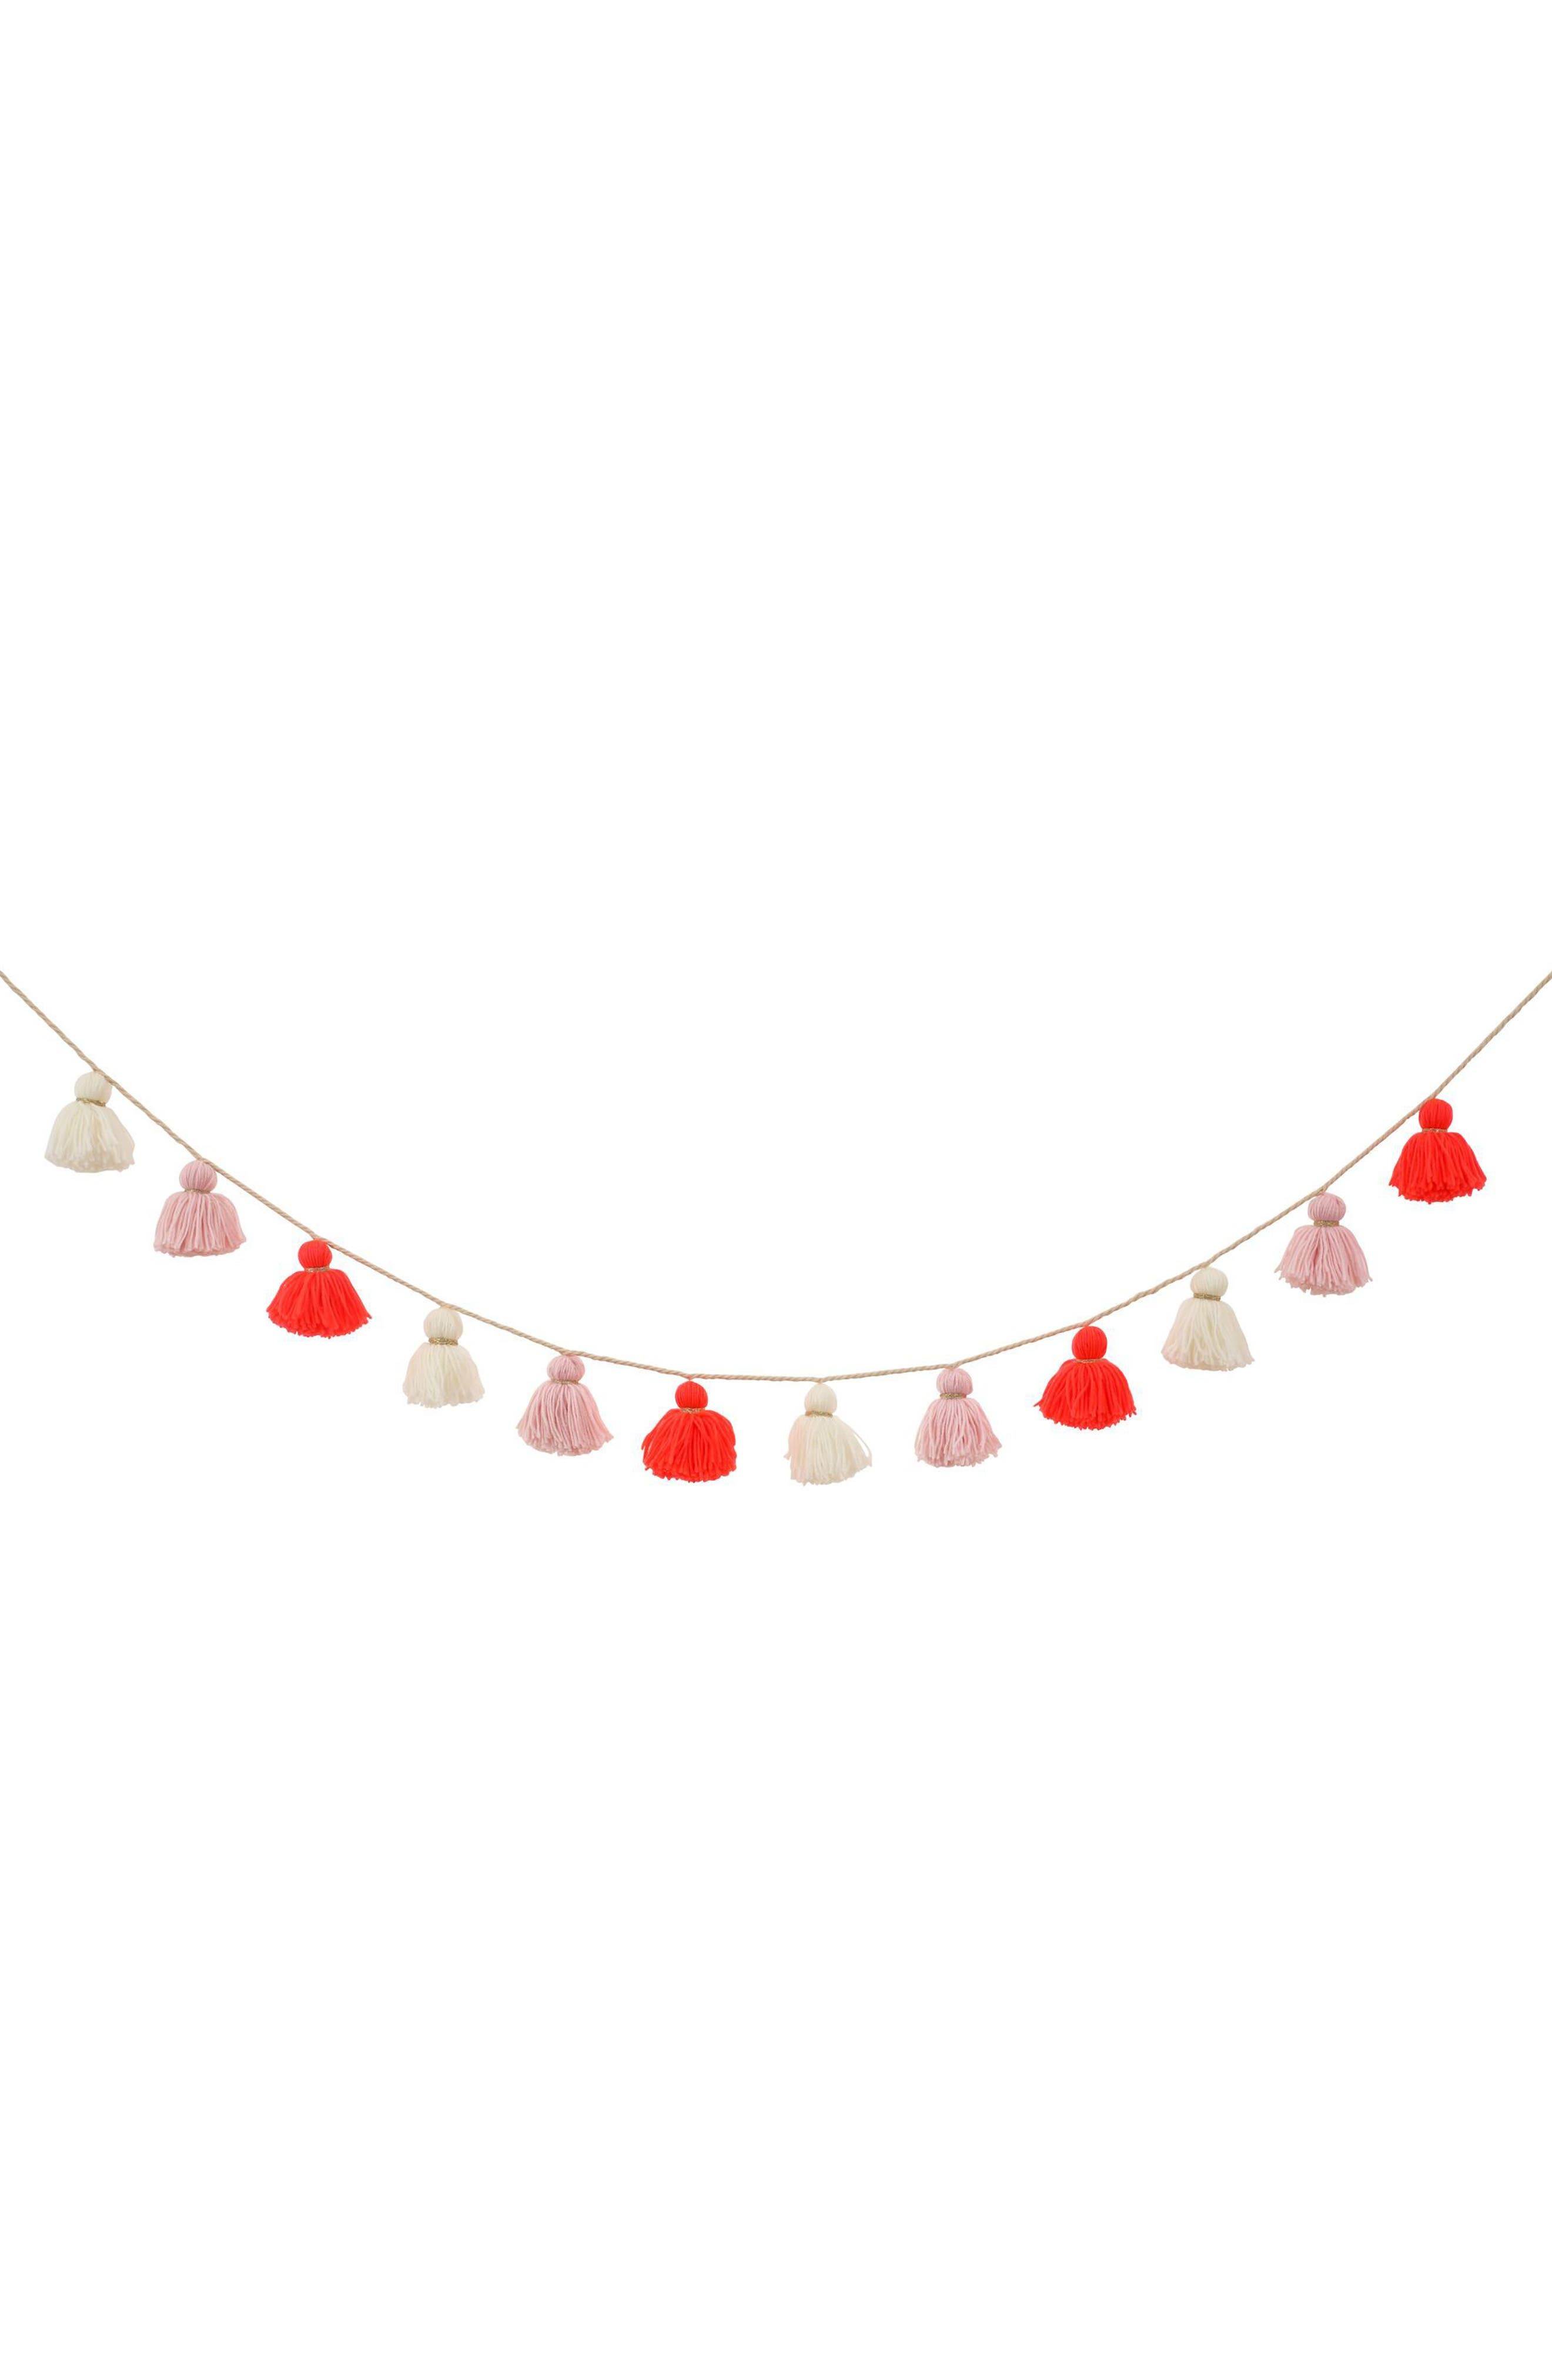 Wool Tassel Party Garland,                         Main,                         color,